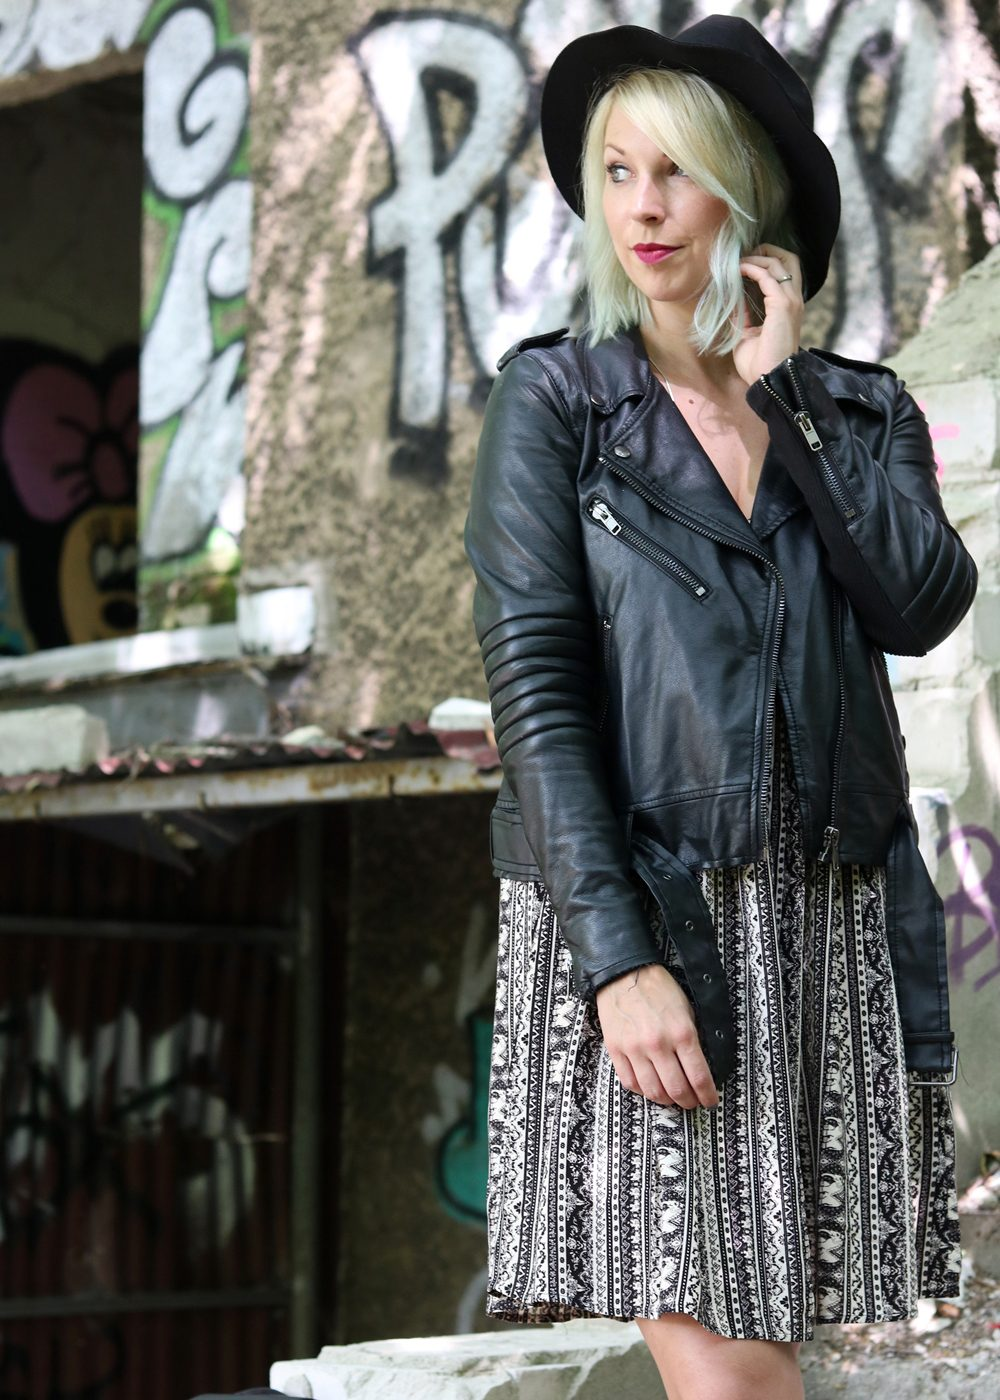 Fashinblogger Outfit Lost Places Berlin Lederjacke Ethnokleid Bikerboots Hut (17)